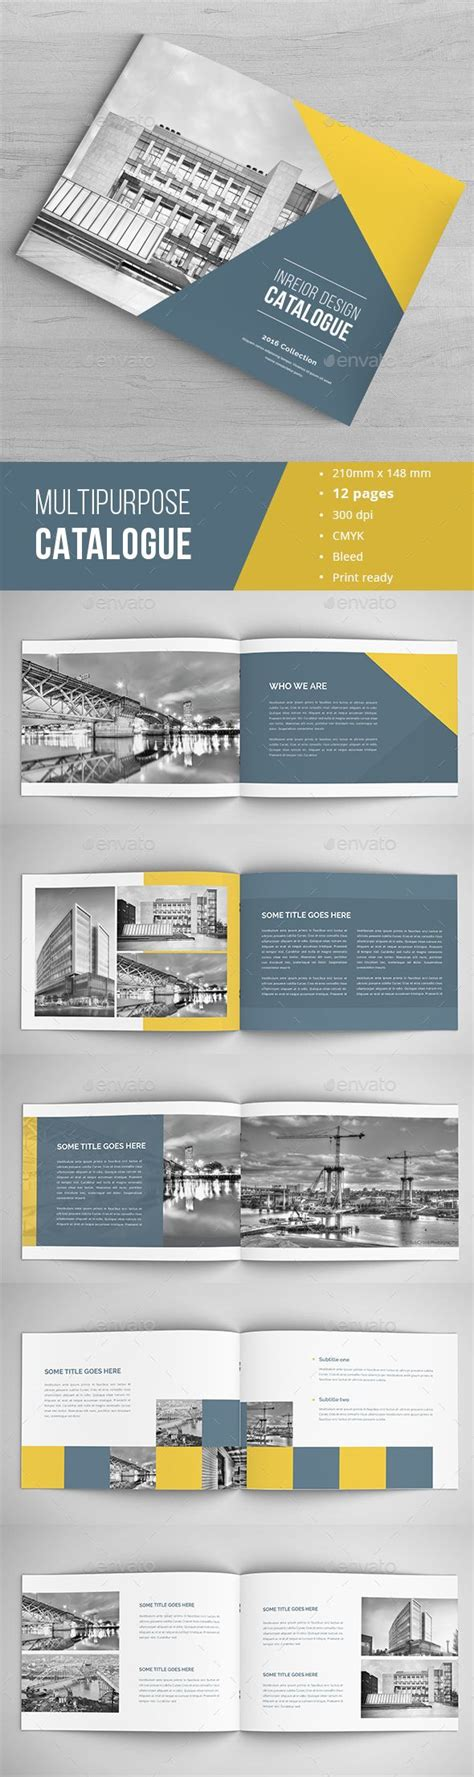 brochure layout in indesign modern architecture brochure template indesign indd